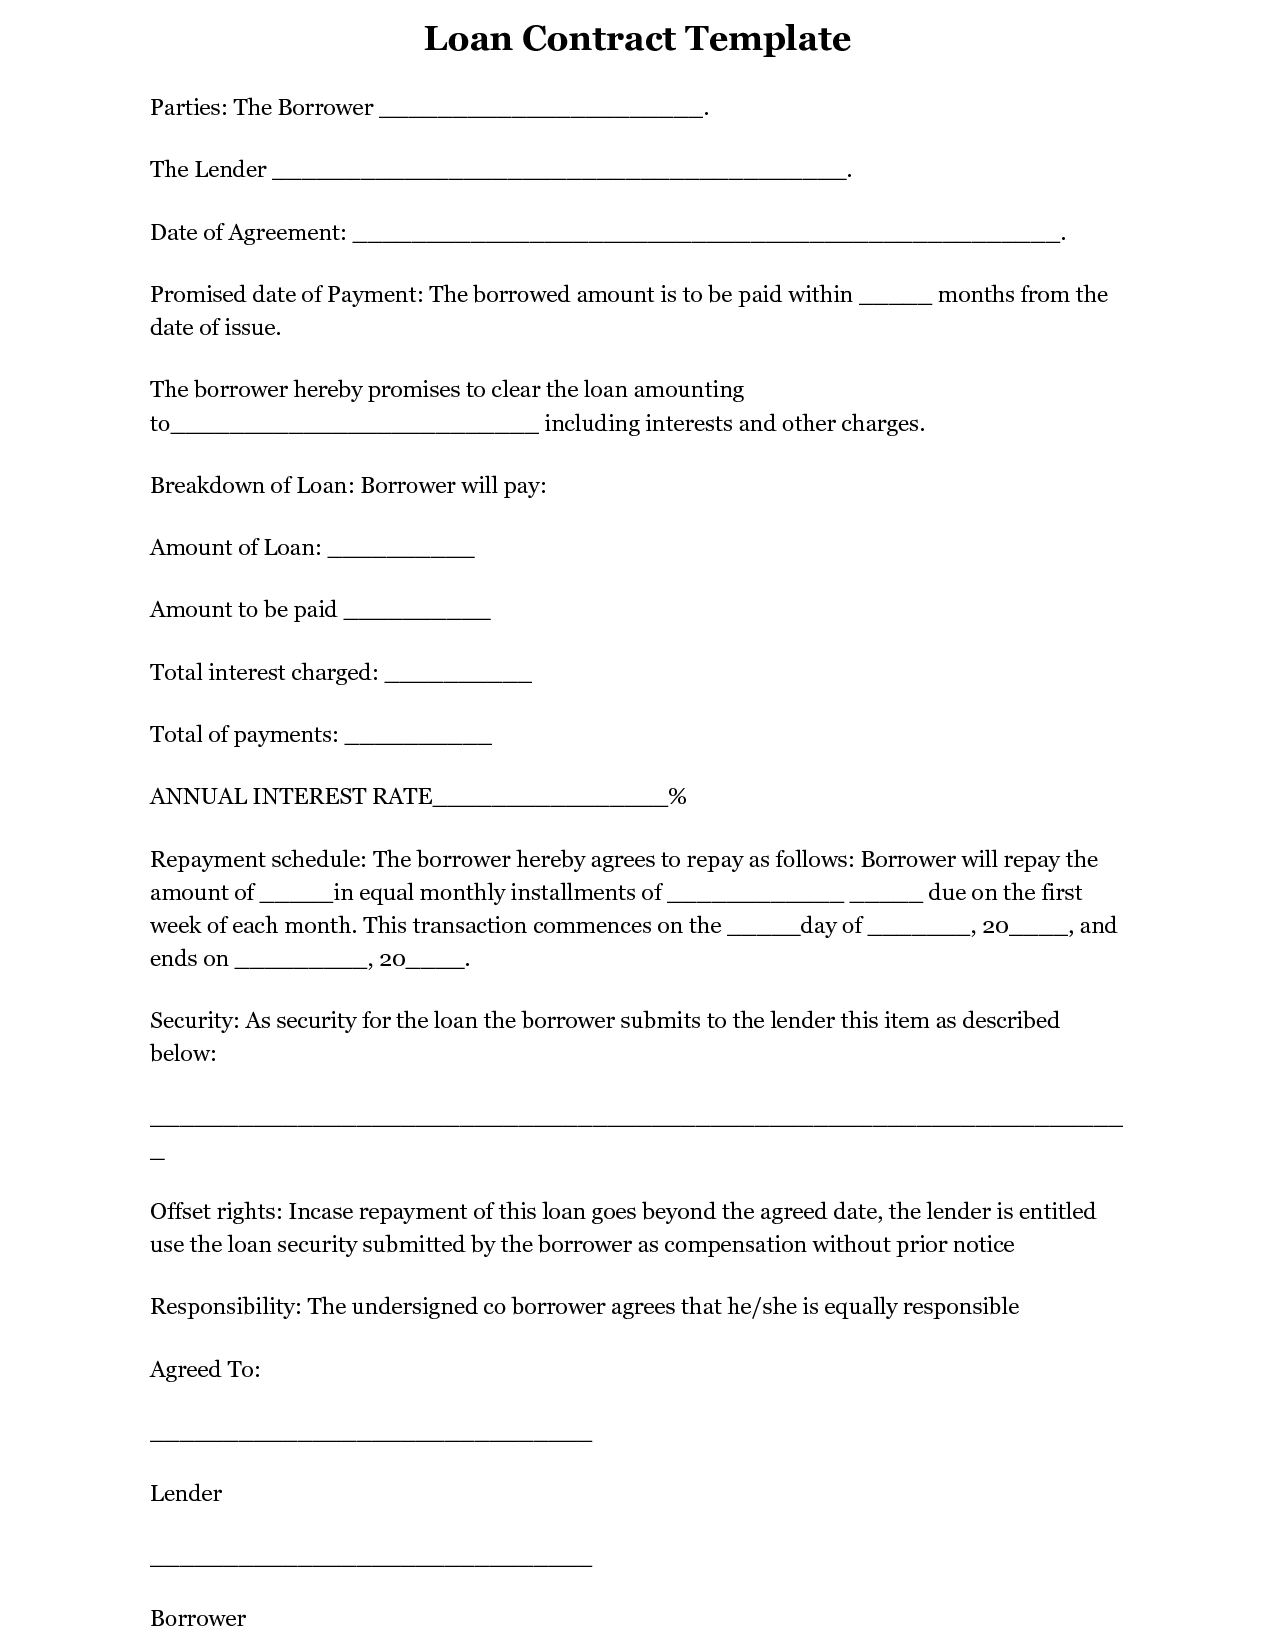 Lovely Simple Interest Loan Agreement Template | Koco Yhinoha   Simple Loan  Contract